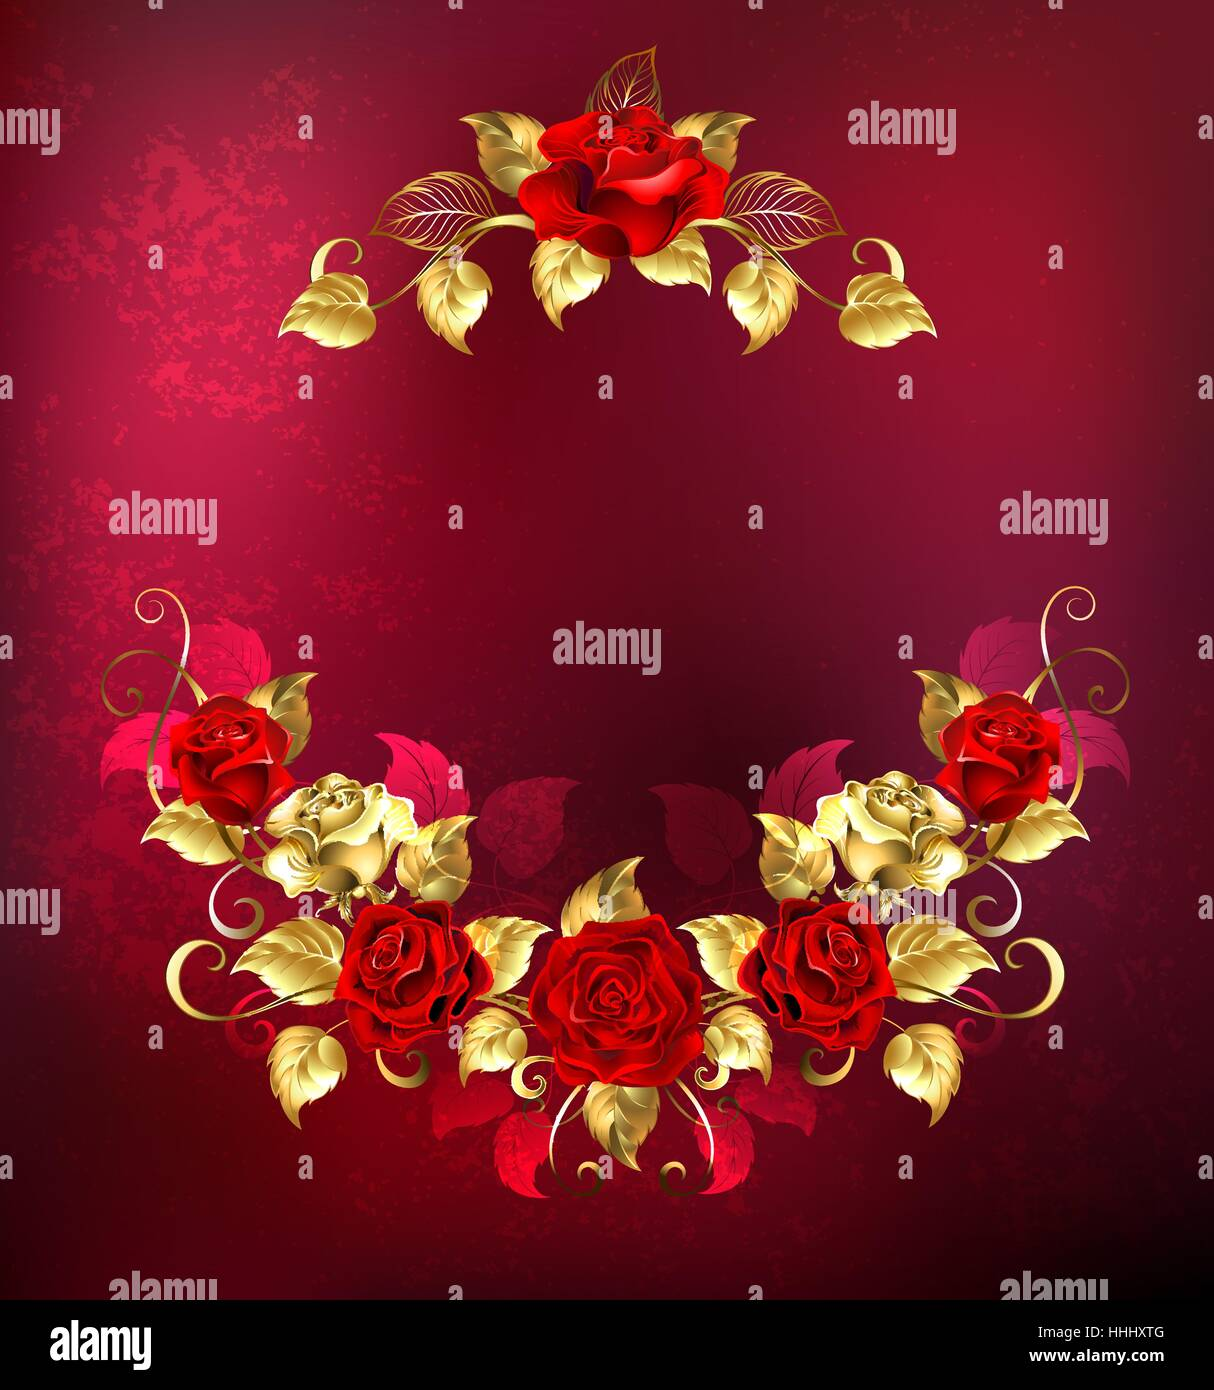 symmetrical garland of gold jewelry and passionate red roses on a